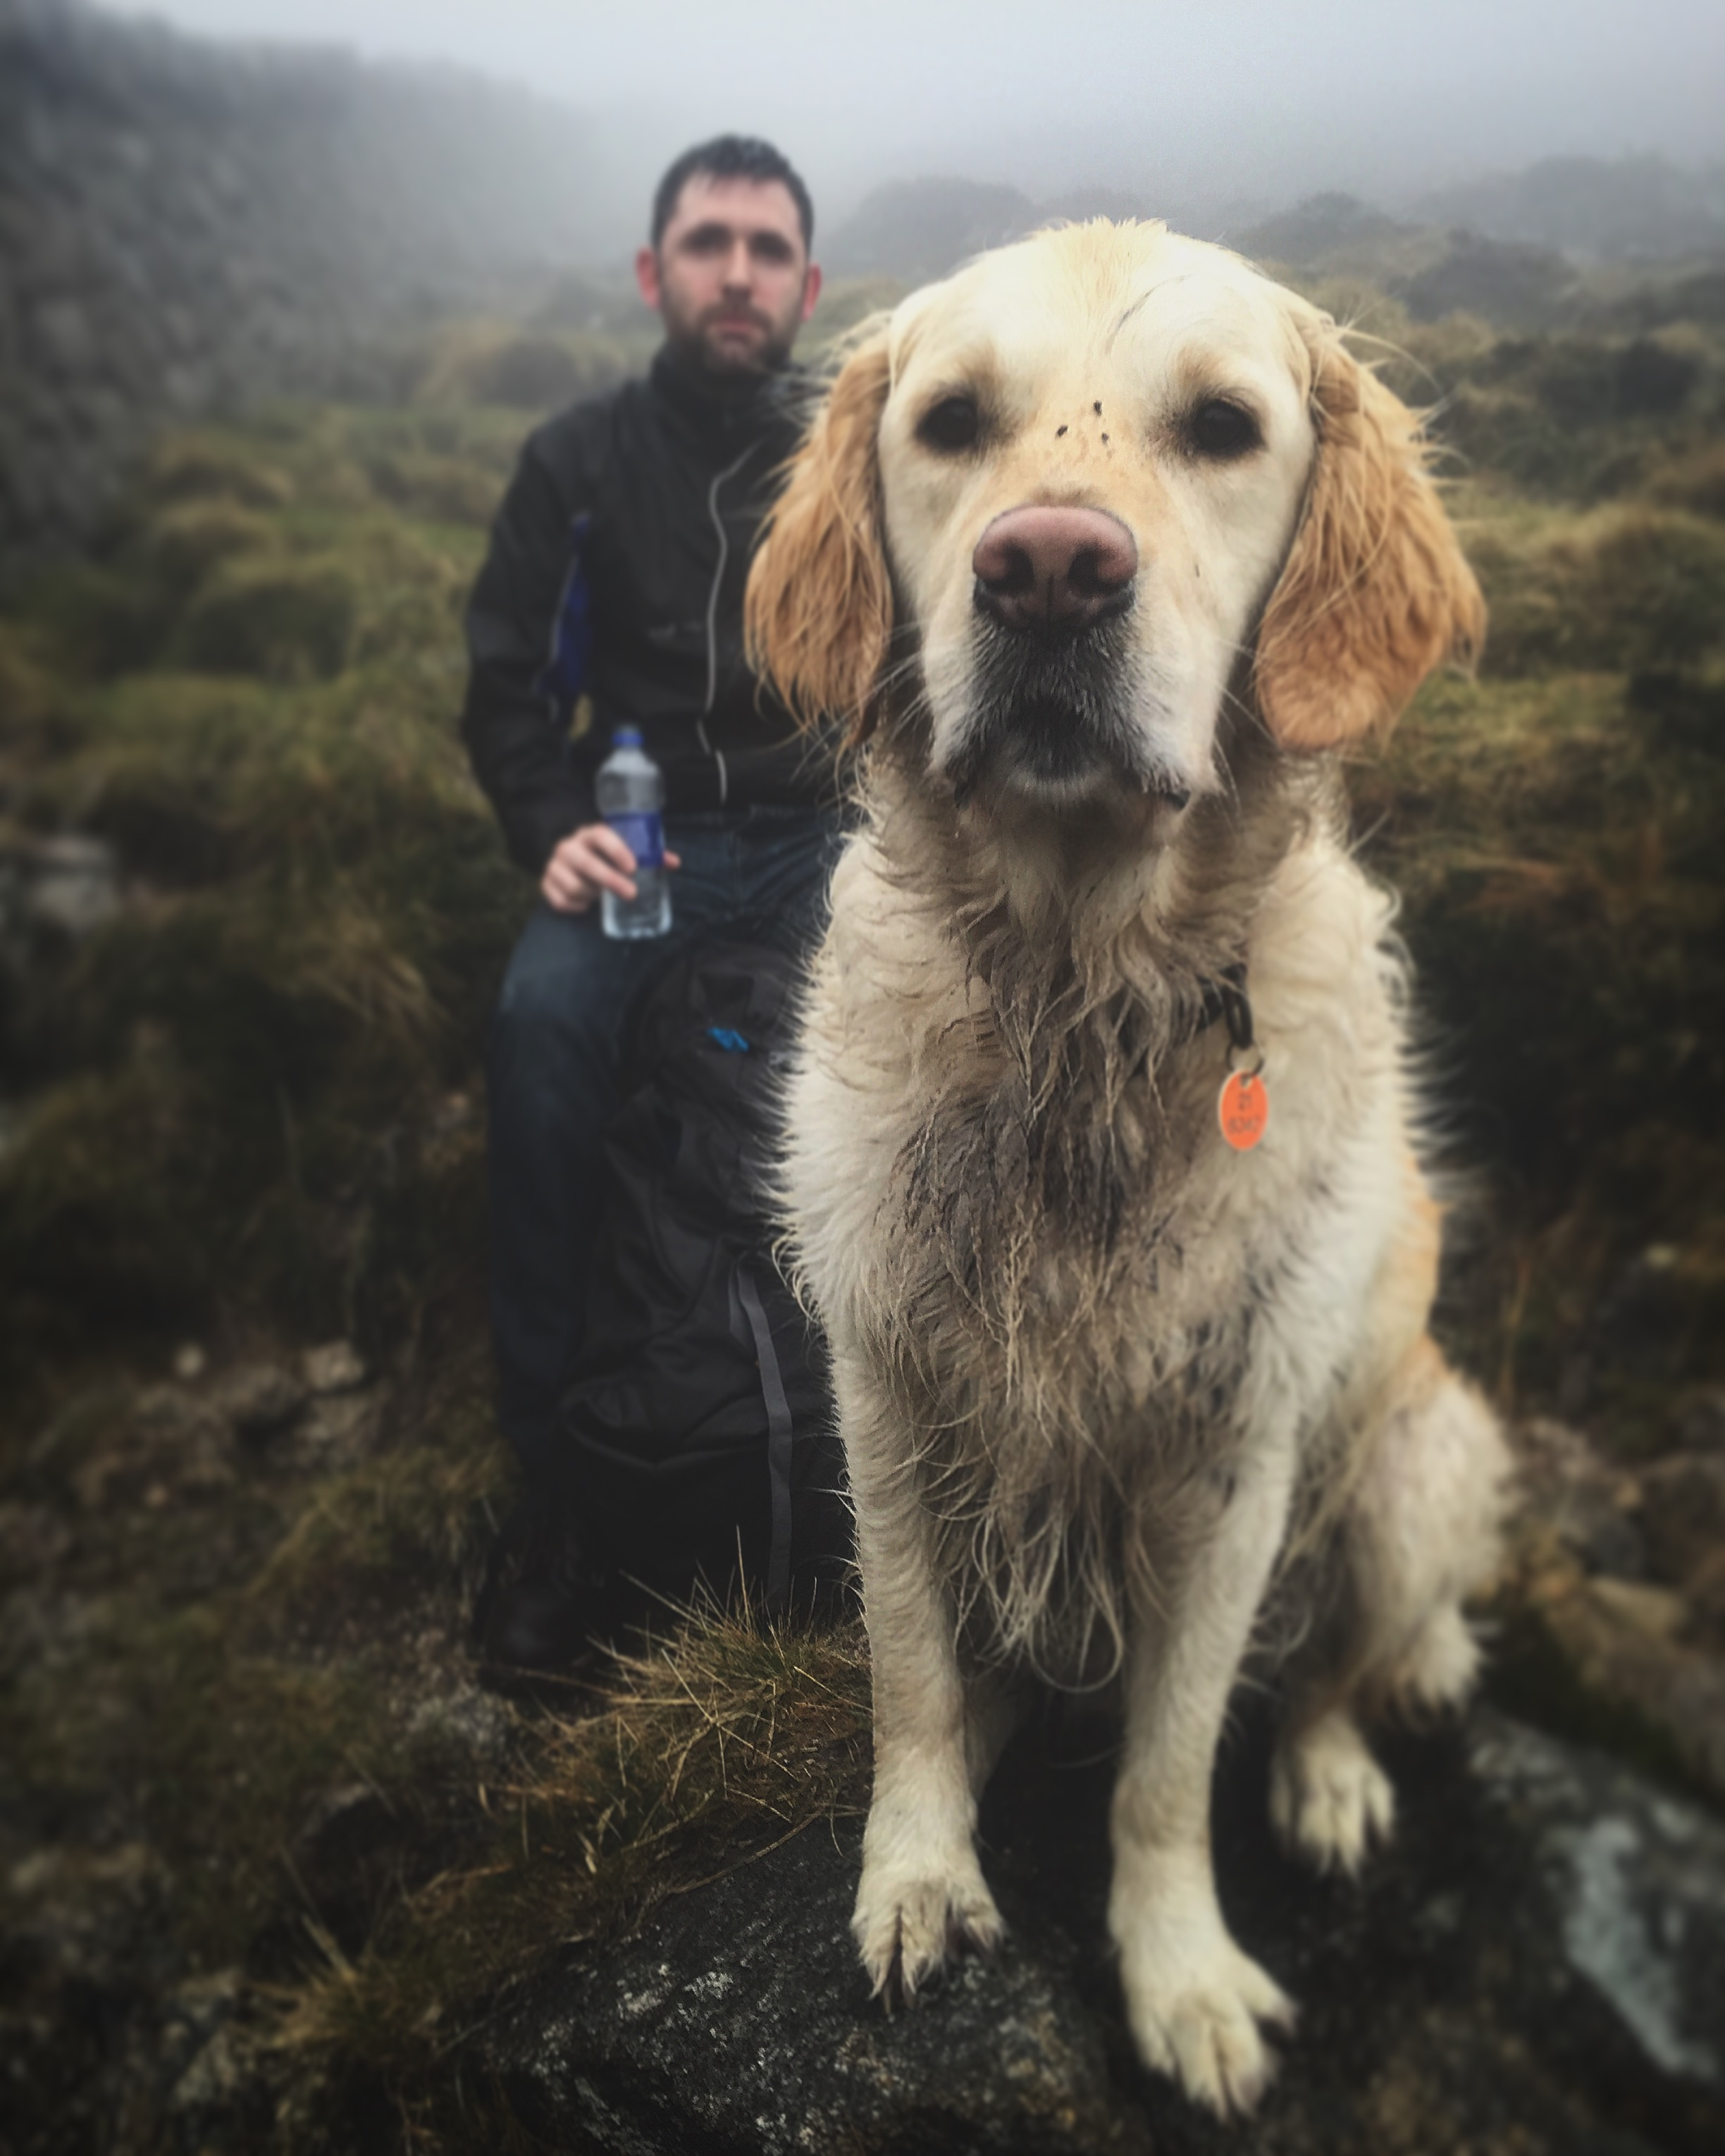 dog_pup_golden_retriever_hares_gap_slieve_donard_newcastle_tollymore_mourne_mountains_ni_explorer_niexplorer_northern_ireland_blog.jpg